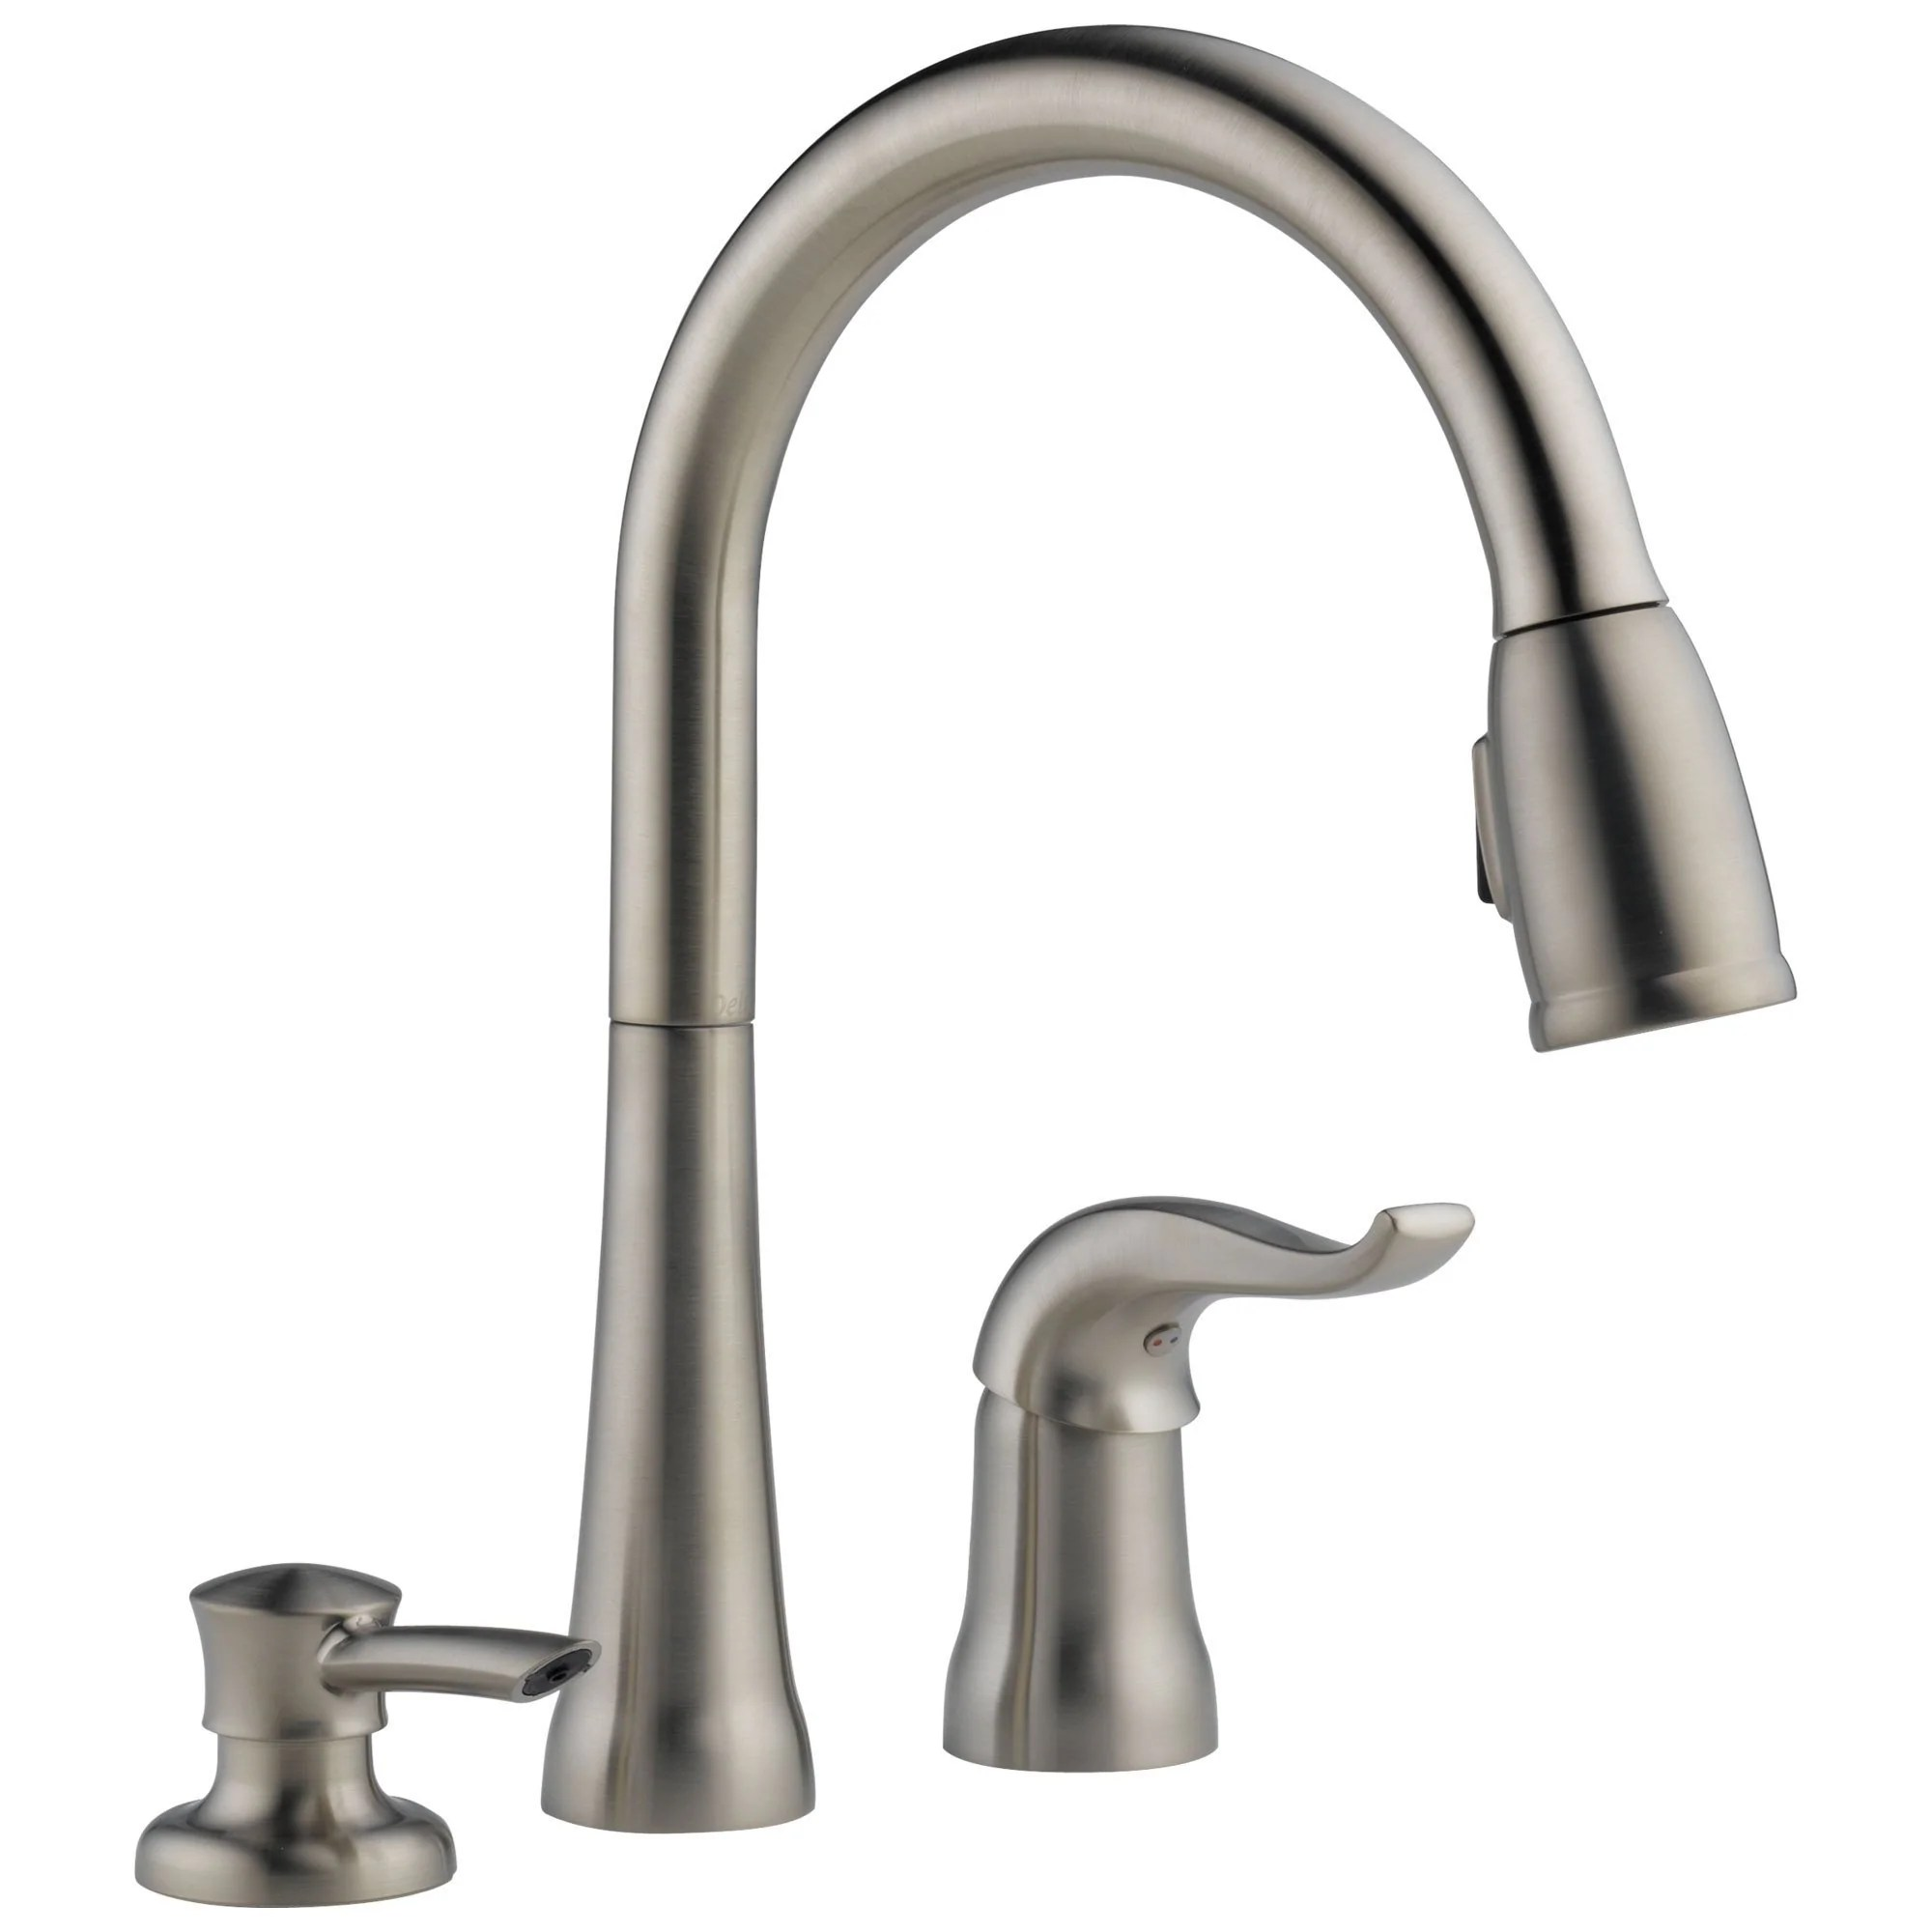 delta stainless steel finish single handle 3 hole pull down sprayer kitchen sink faucet with soap dispenser d16970sssddst